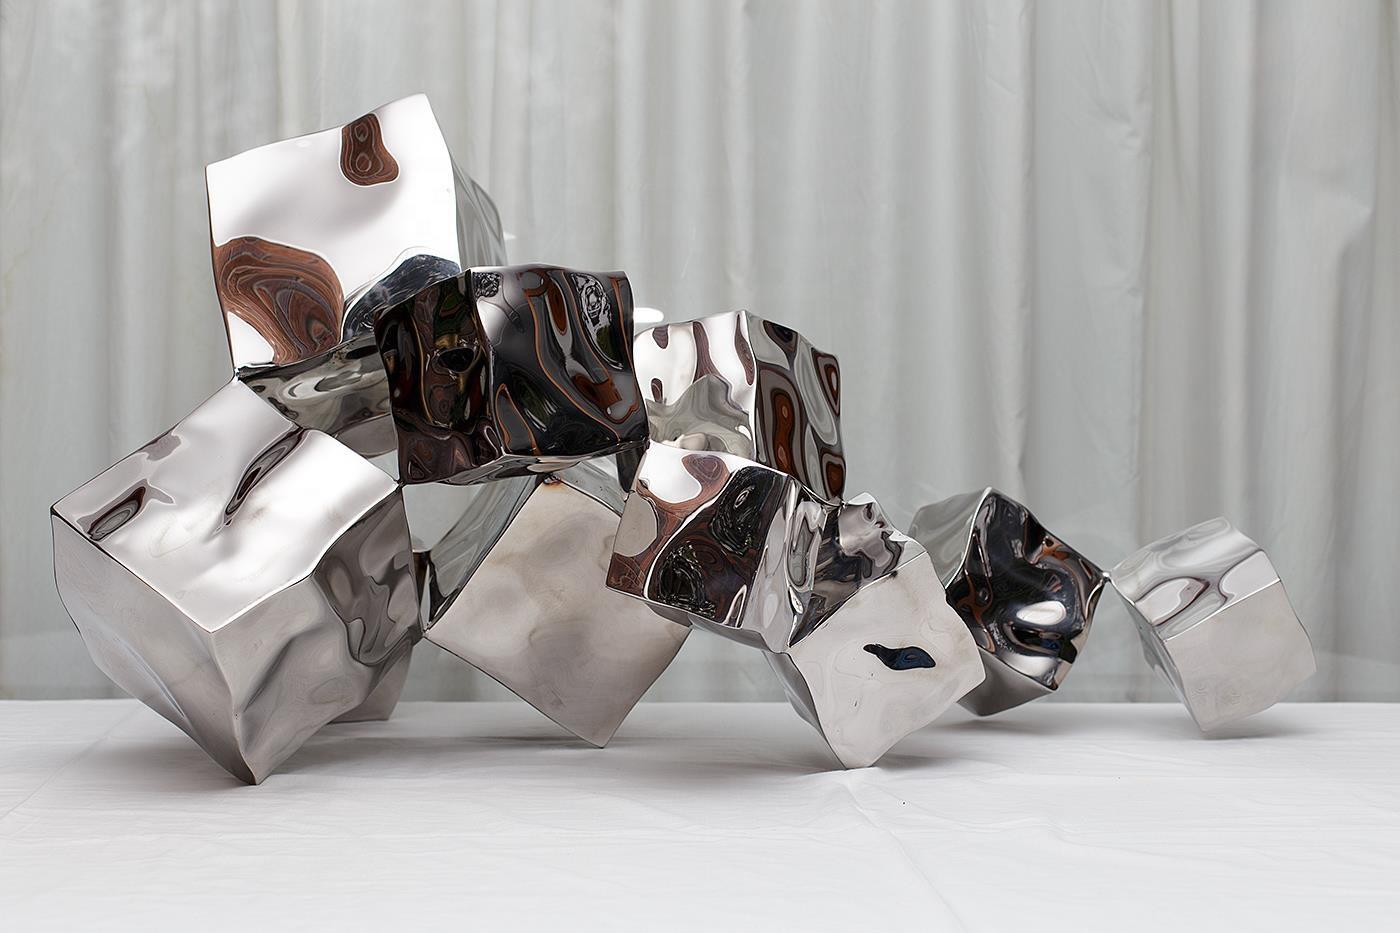 Mirror polished stainless steel Cube BallStatue